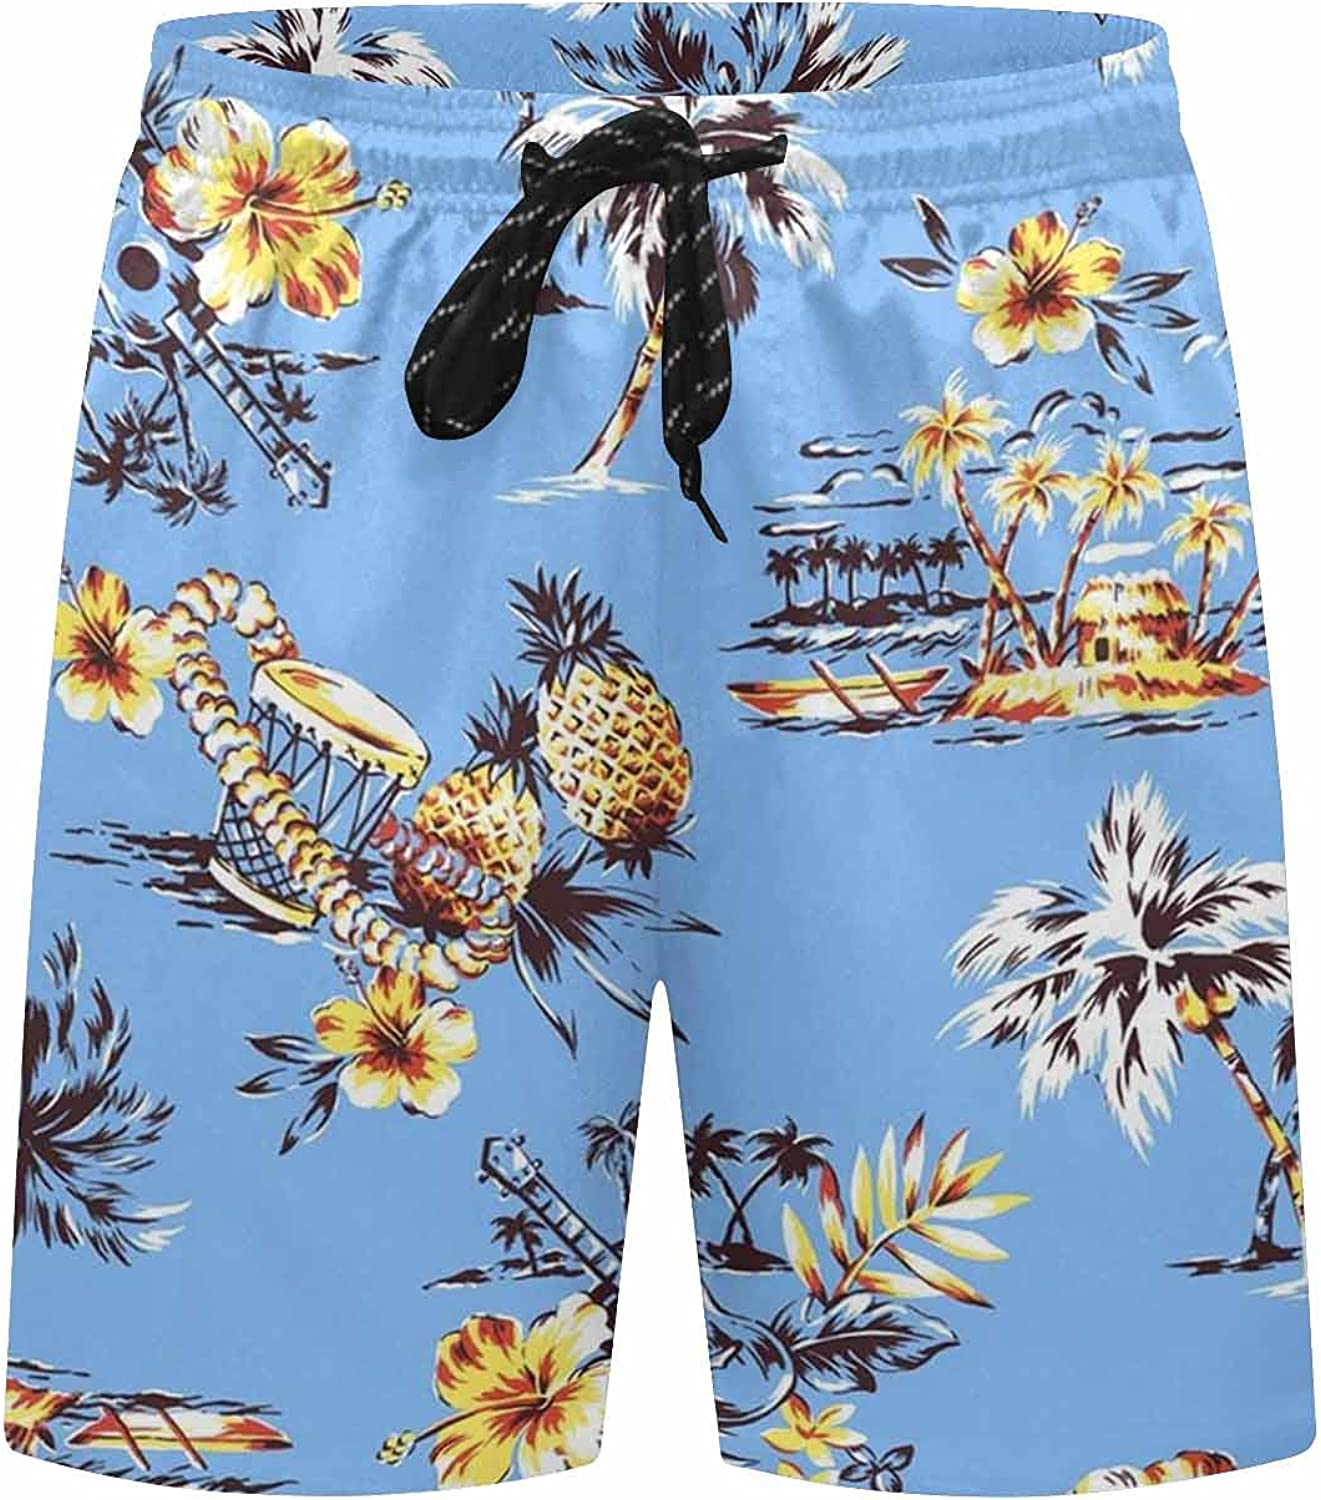 InterestPrint a Tree with Flying Birds Boardshort Swim Trunks for Men Beach Quick Dry Swimming Shorts